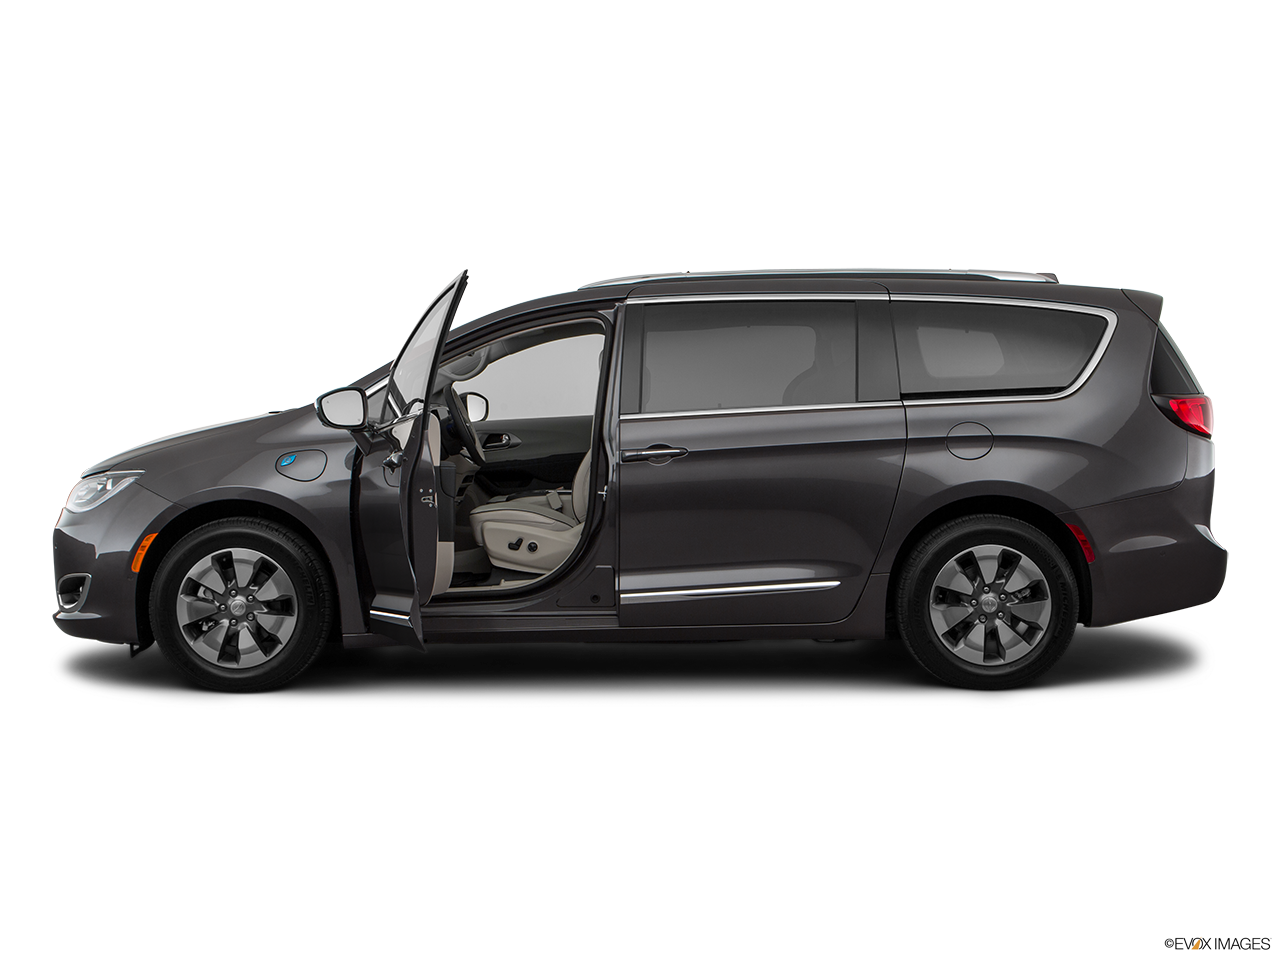 Side view of the Chrysler Pacifica